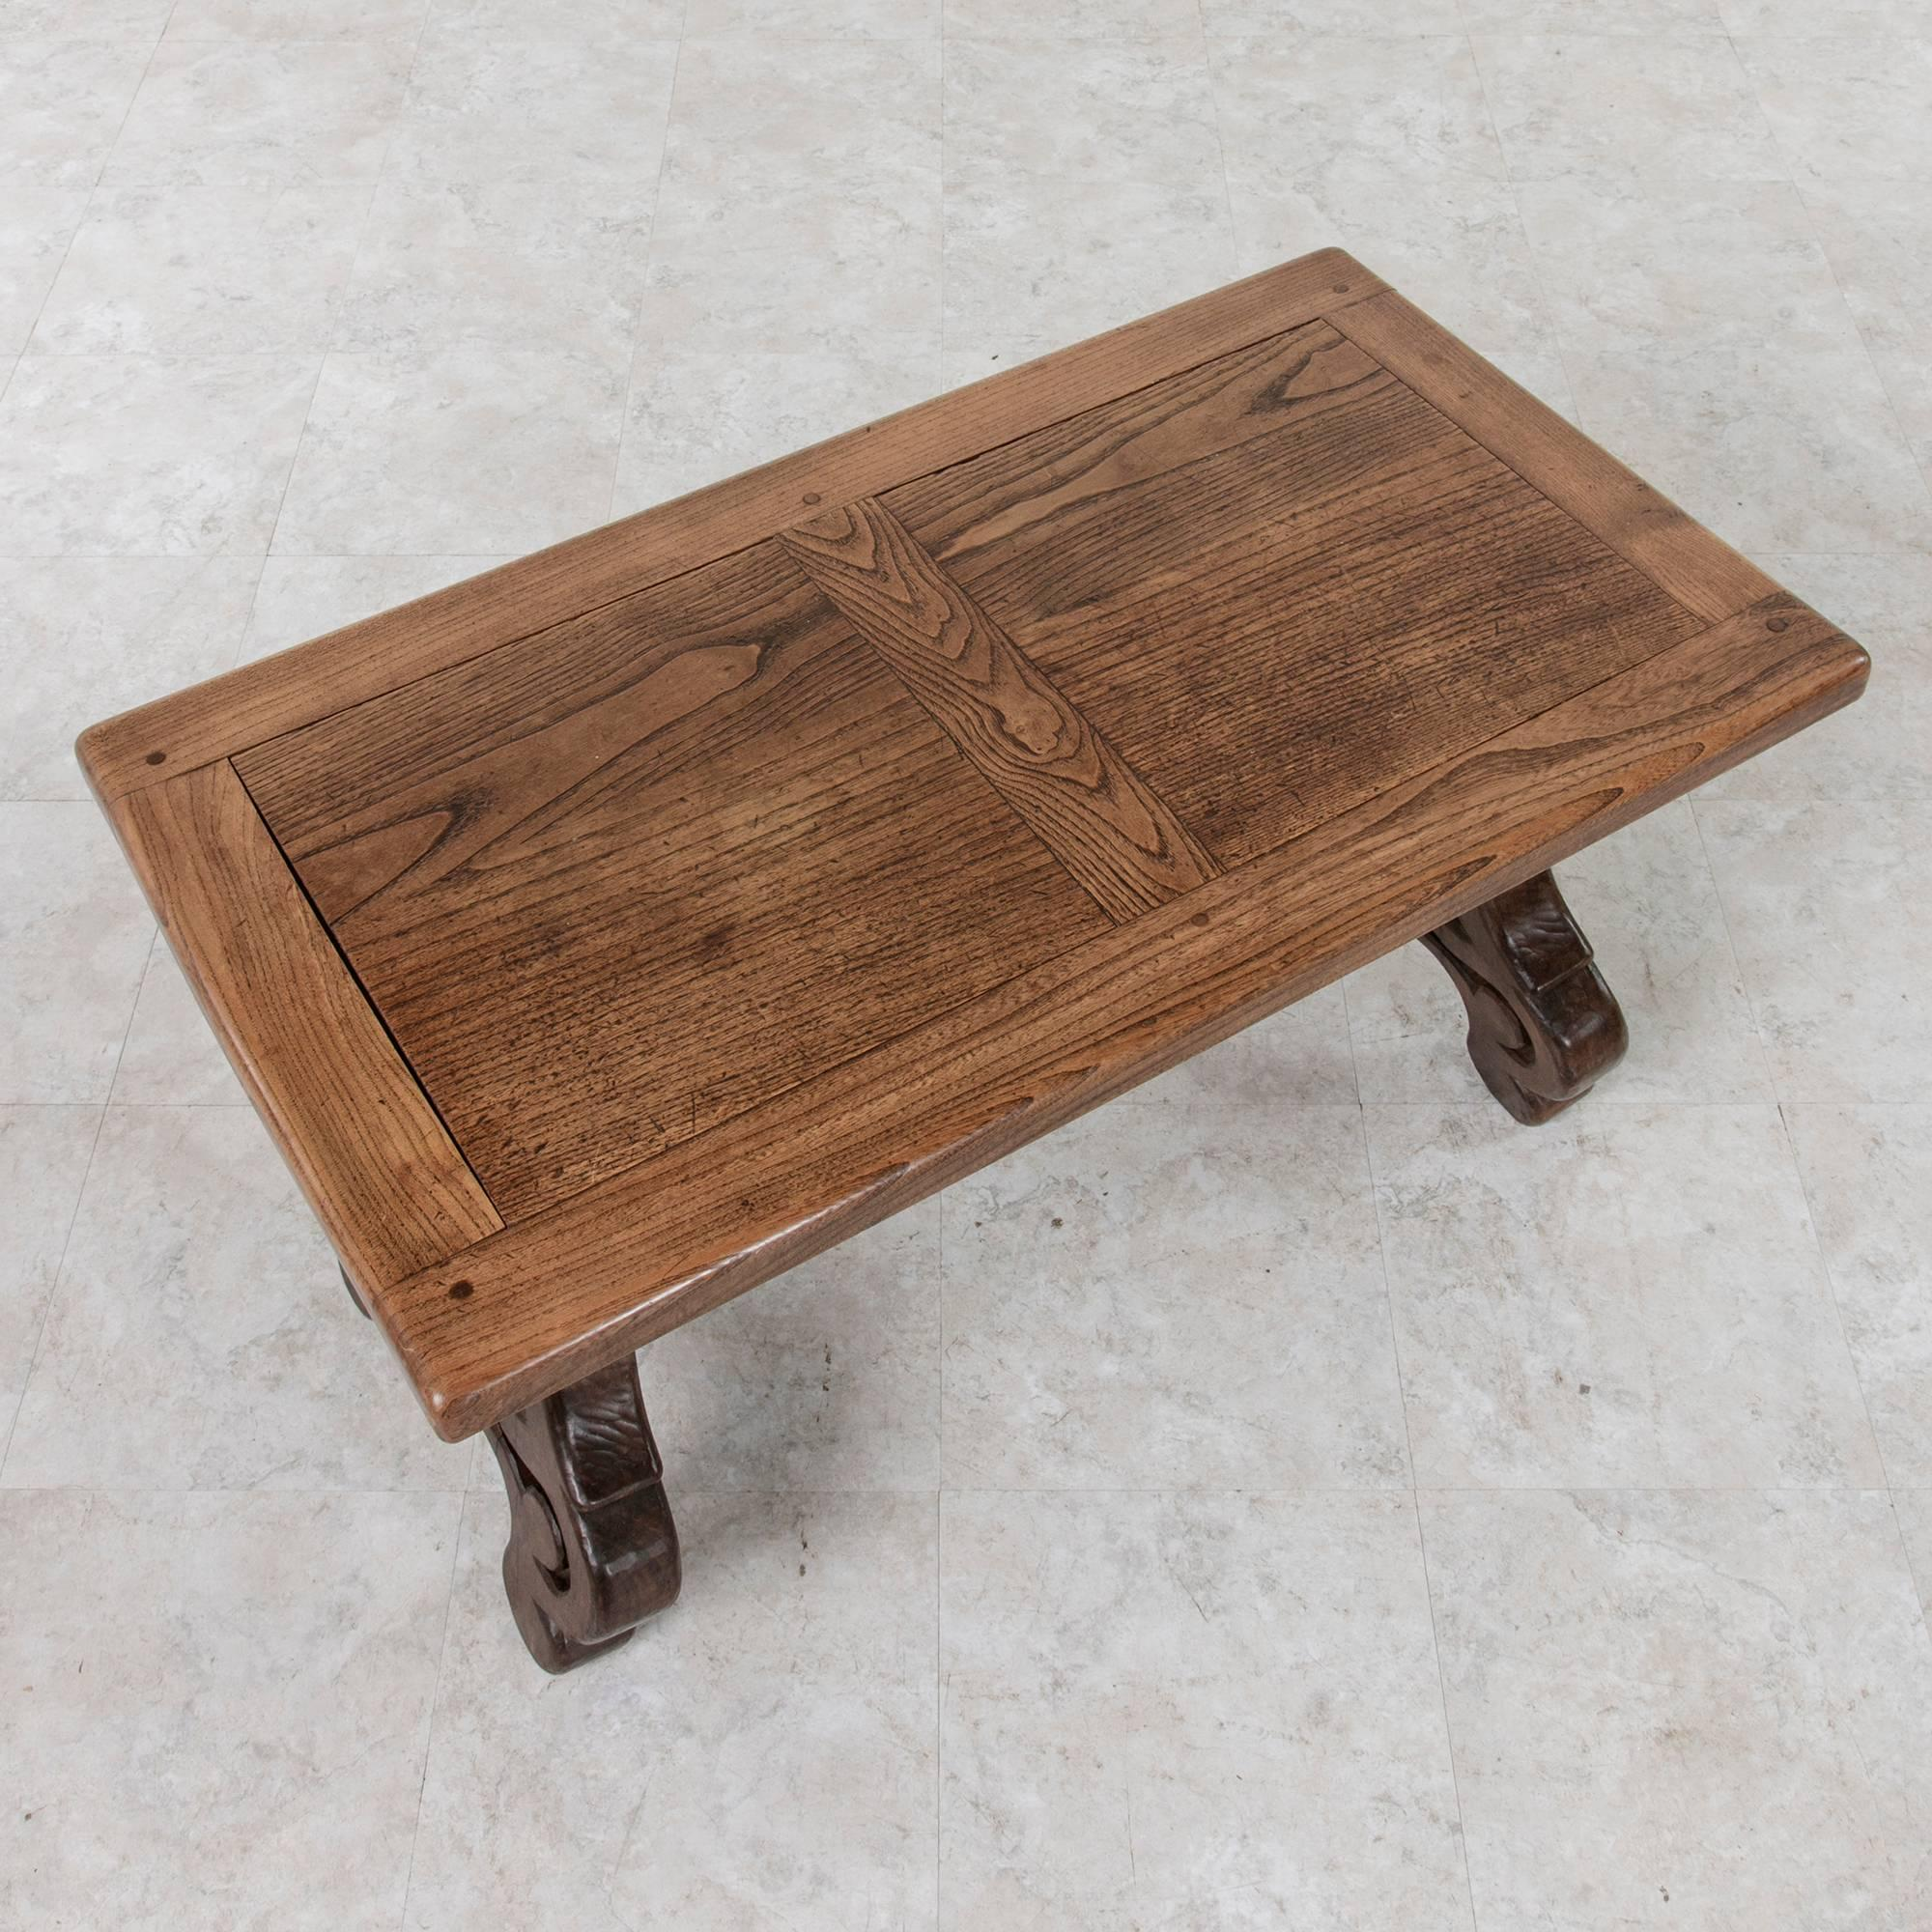 With The Warm Tones Of The Wood That Give It An Old World Feel, This.  Spanish Colonial Early 20th Century Spanish Style Oak Coffee Table ...